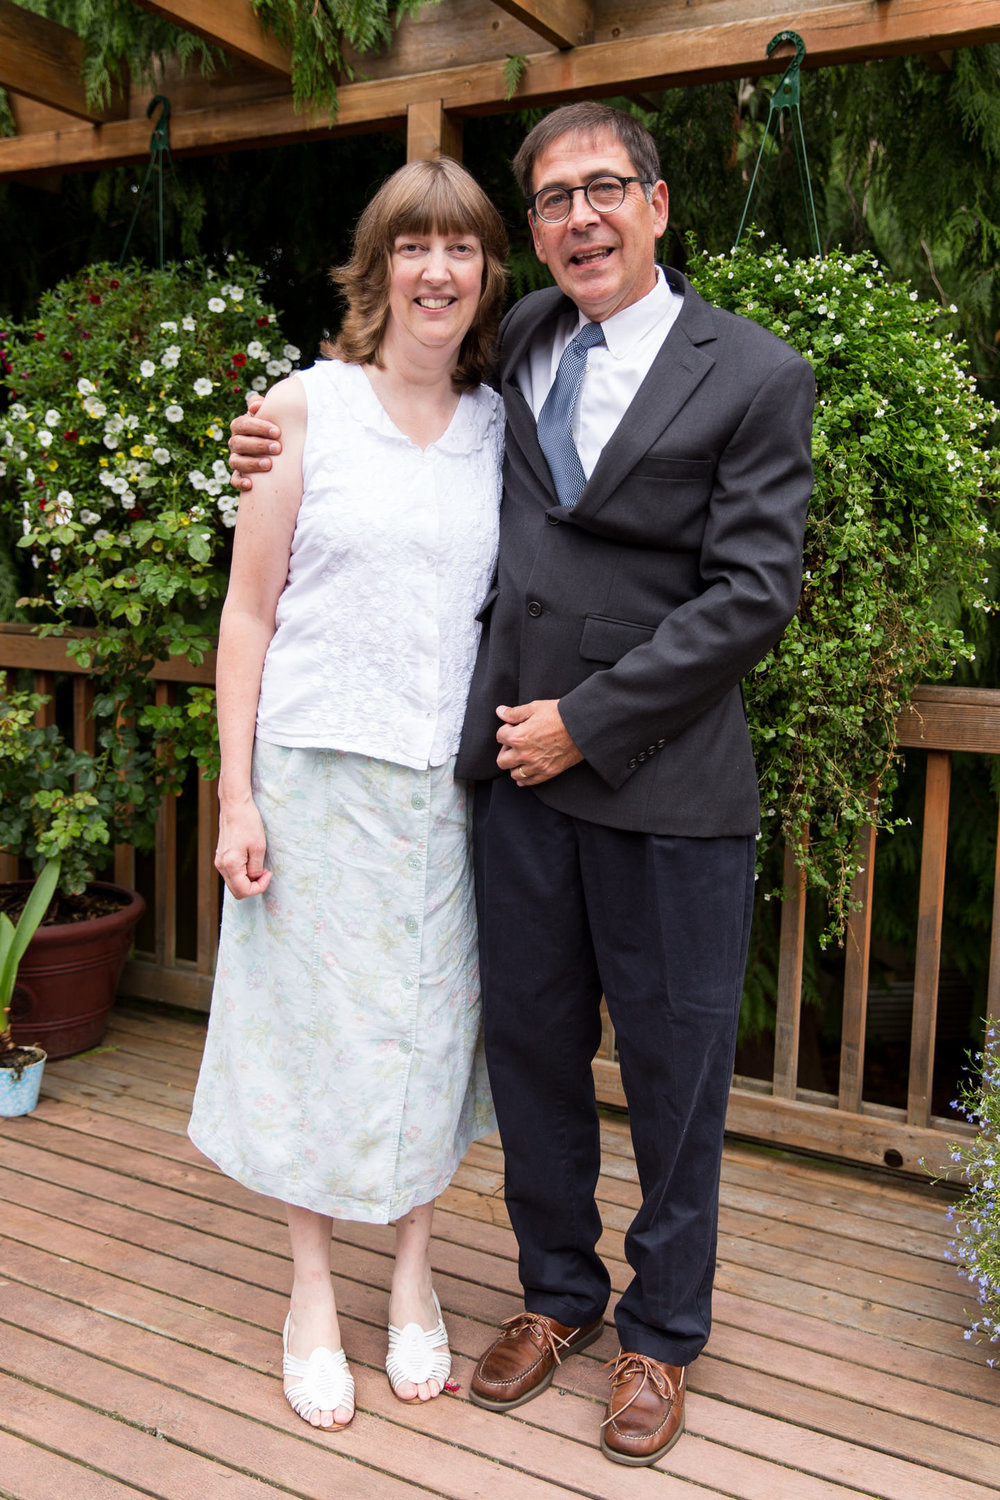 20150913_Tat_Anna and Anders Wedding-16.jpg